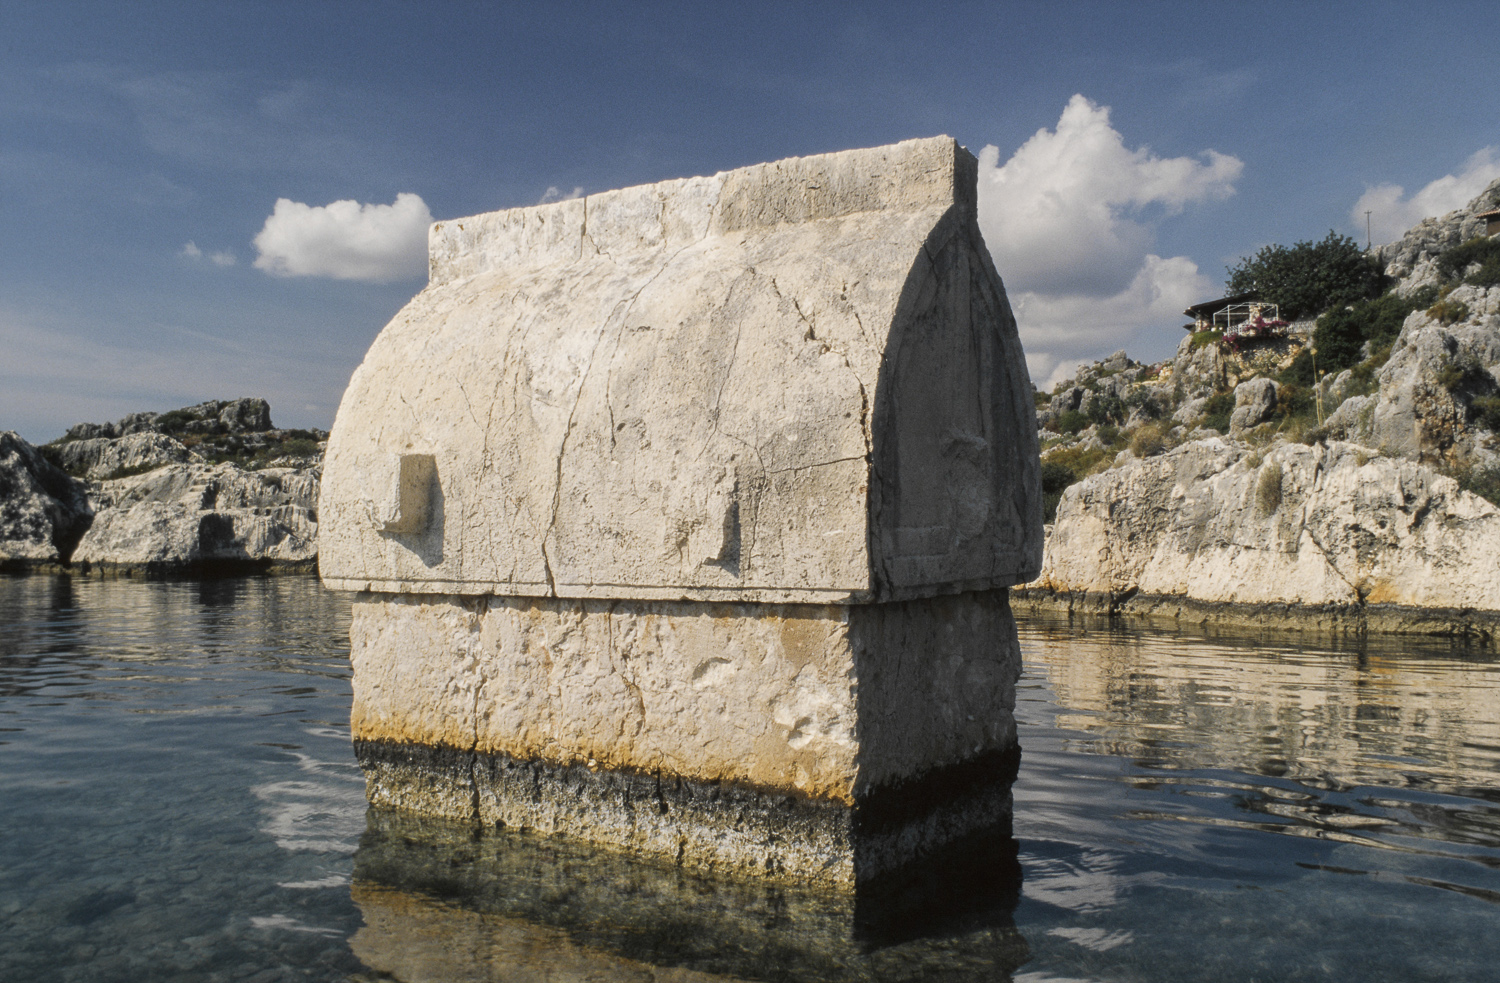 Submerged sarcophagus - Kekova, Turkey, 1997